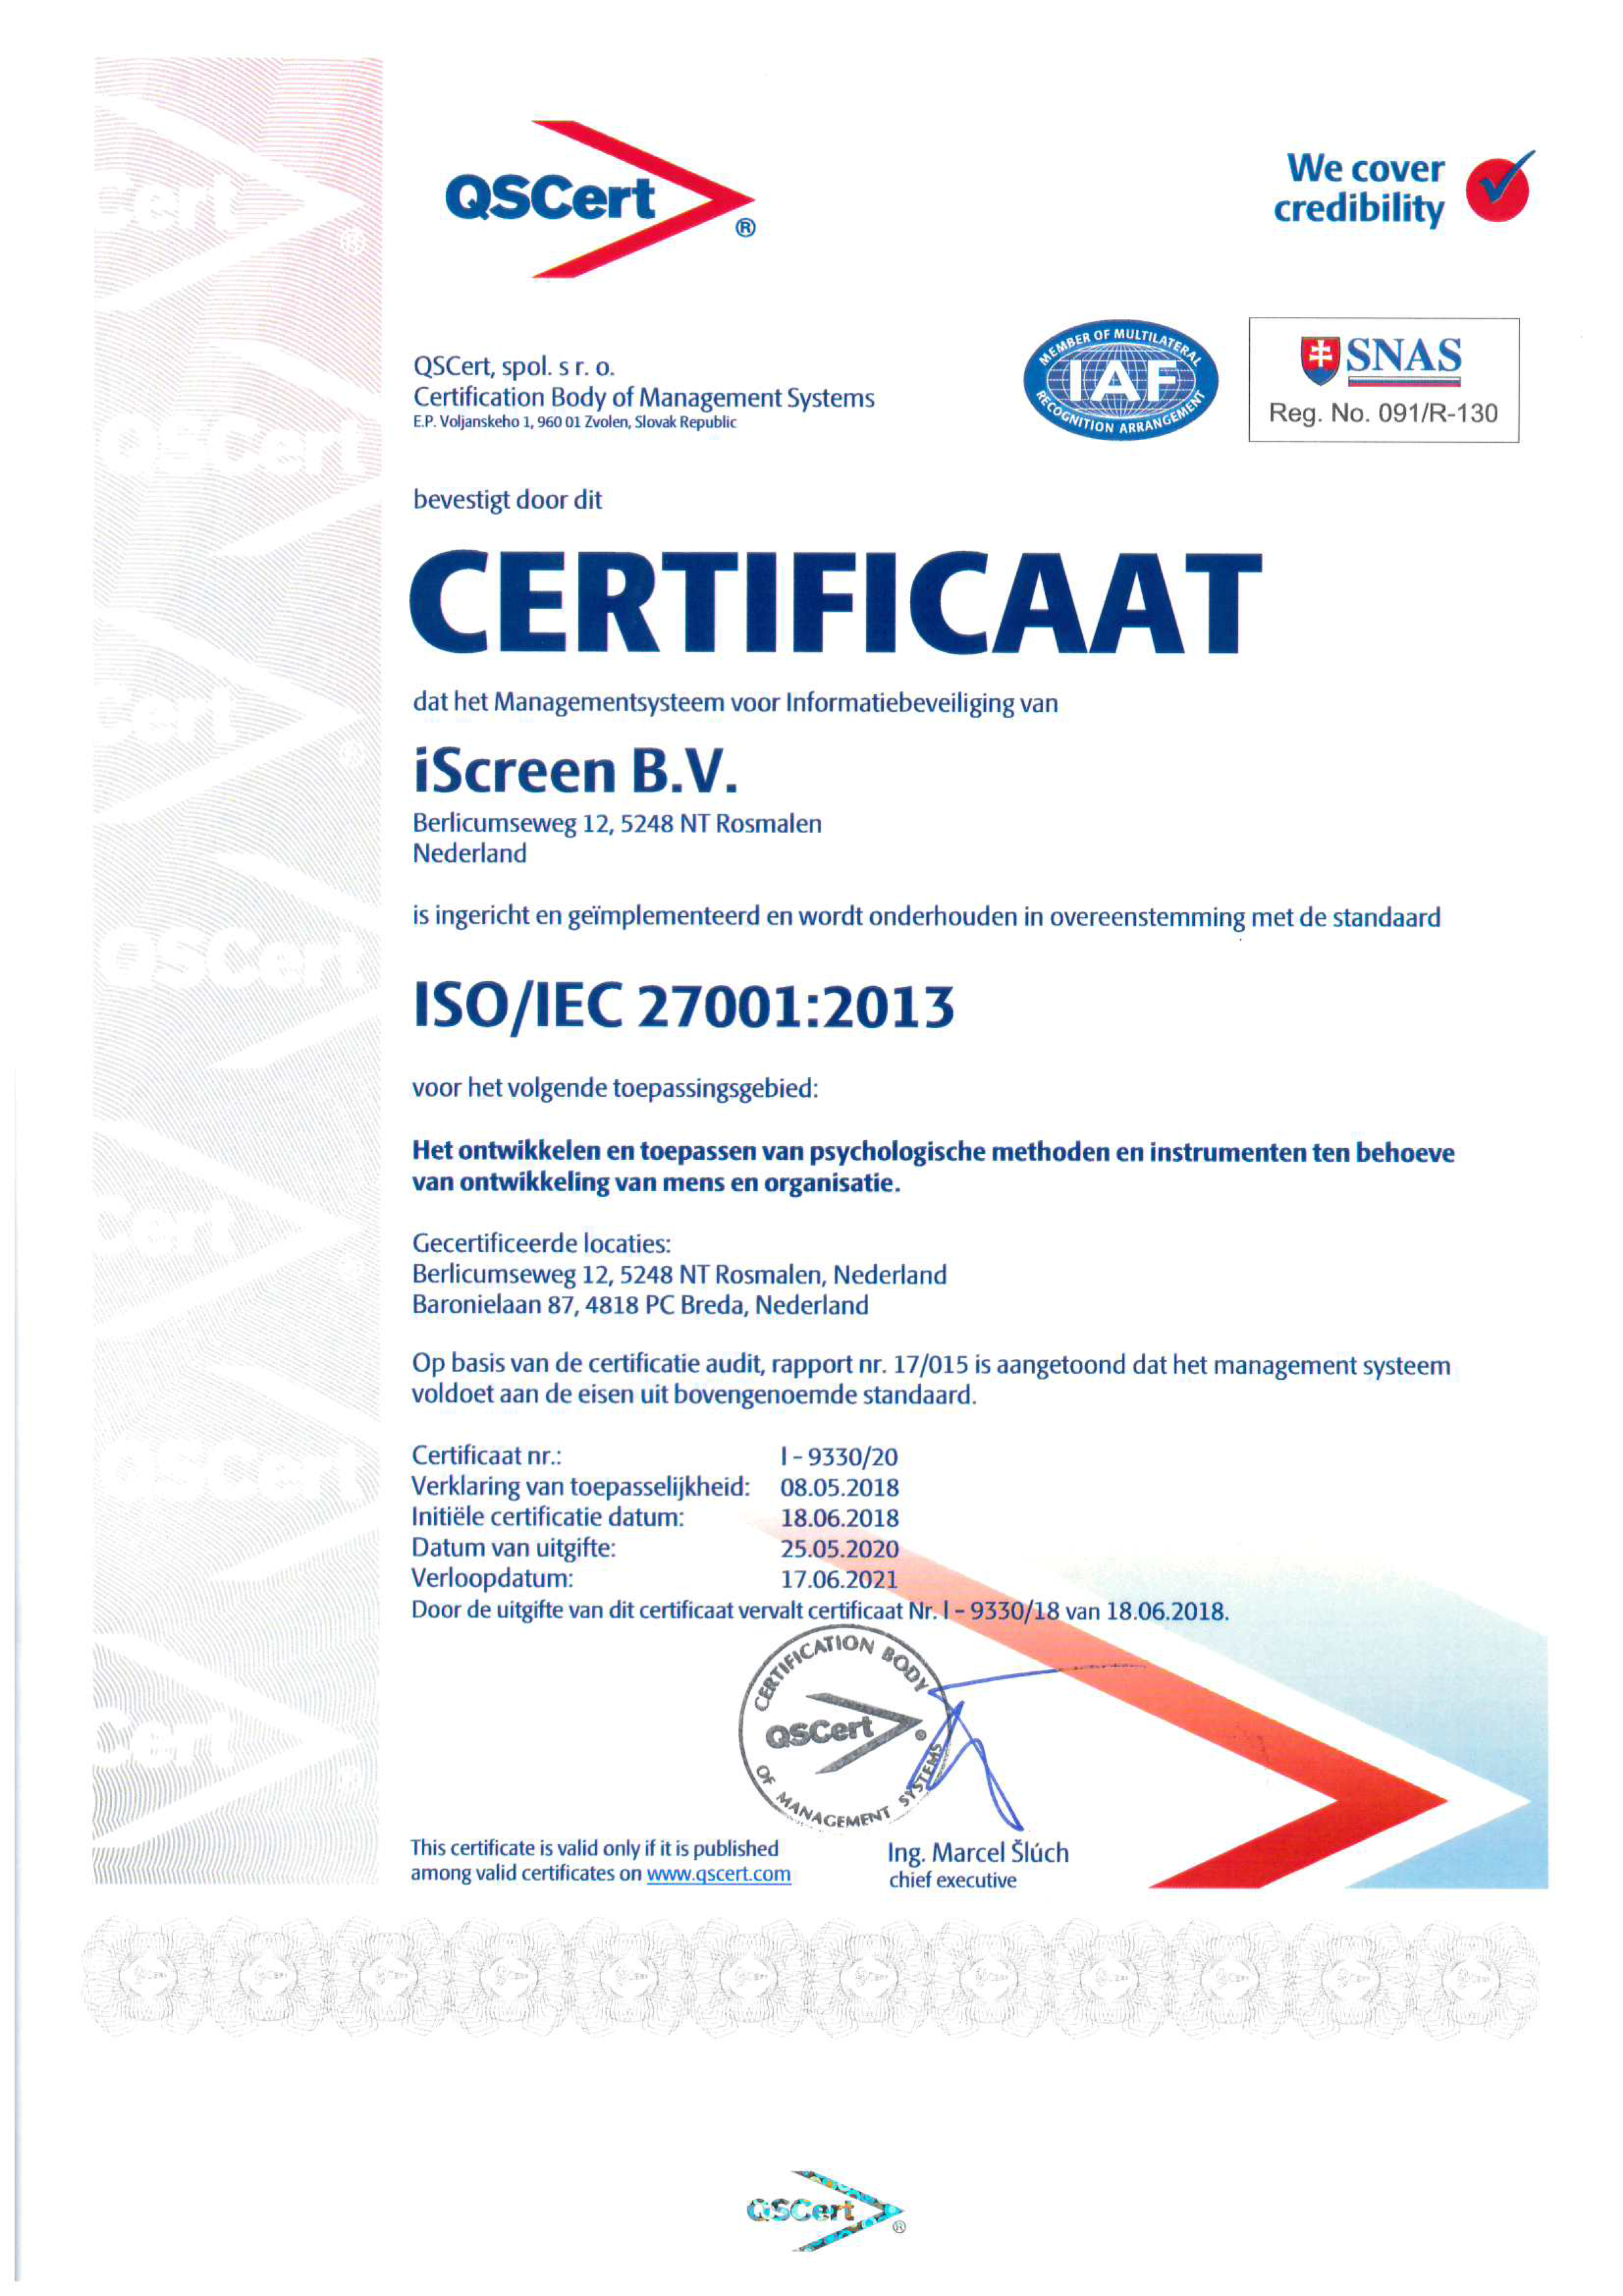 20_015_9_Certificate_27001_NL_signed.png?hash=42ac485ad4bde772